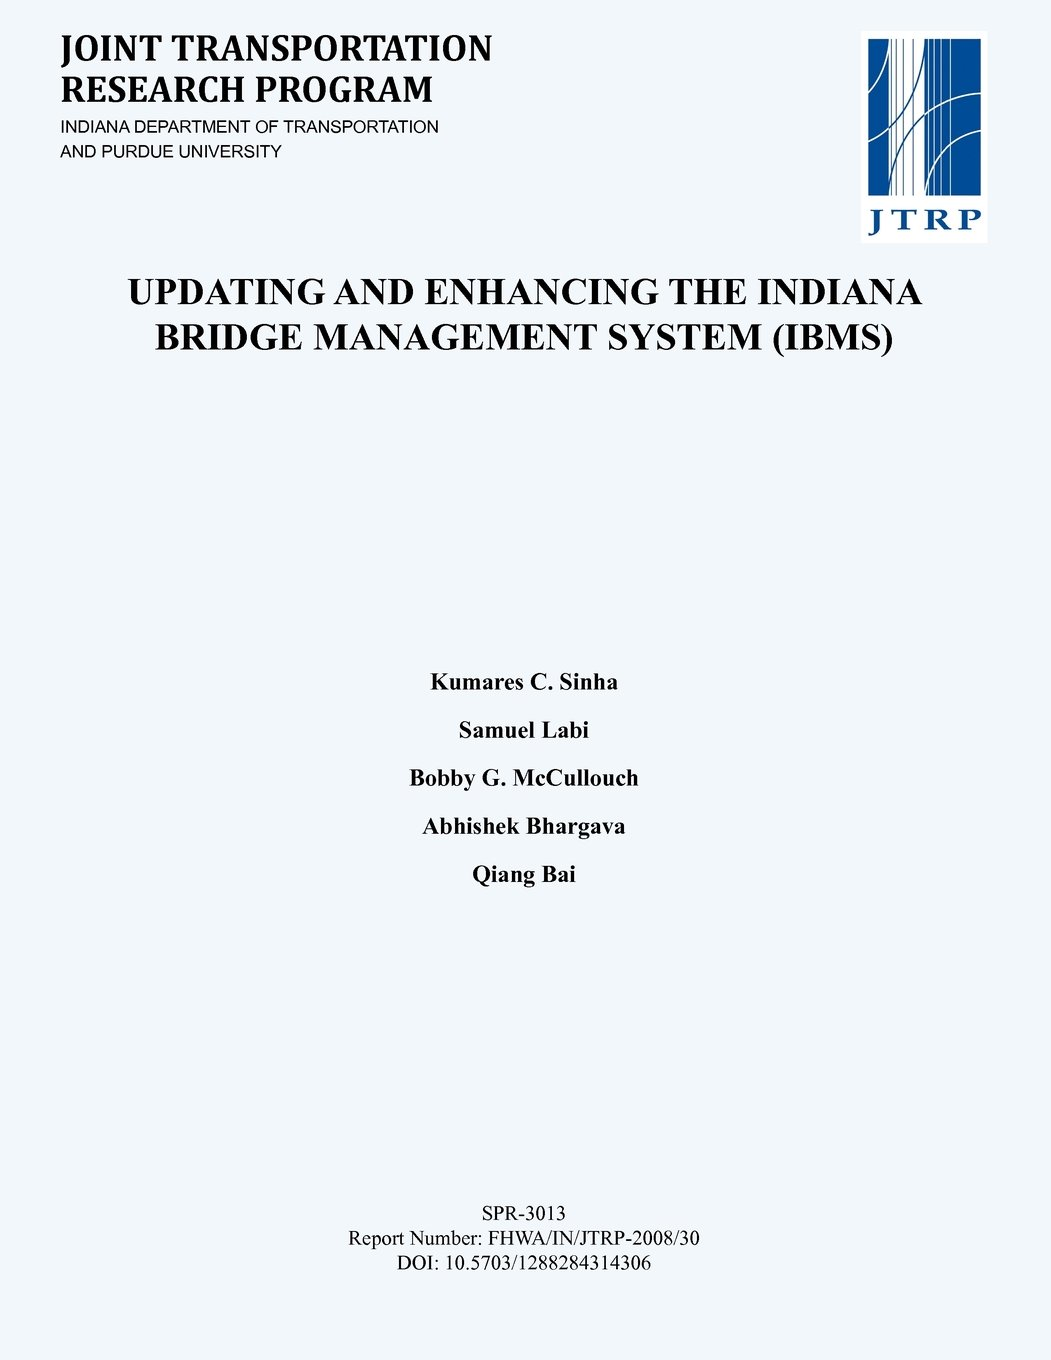 Updating and Enhancing the Indiana Bridge Management System (IBMS) PDF